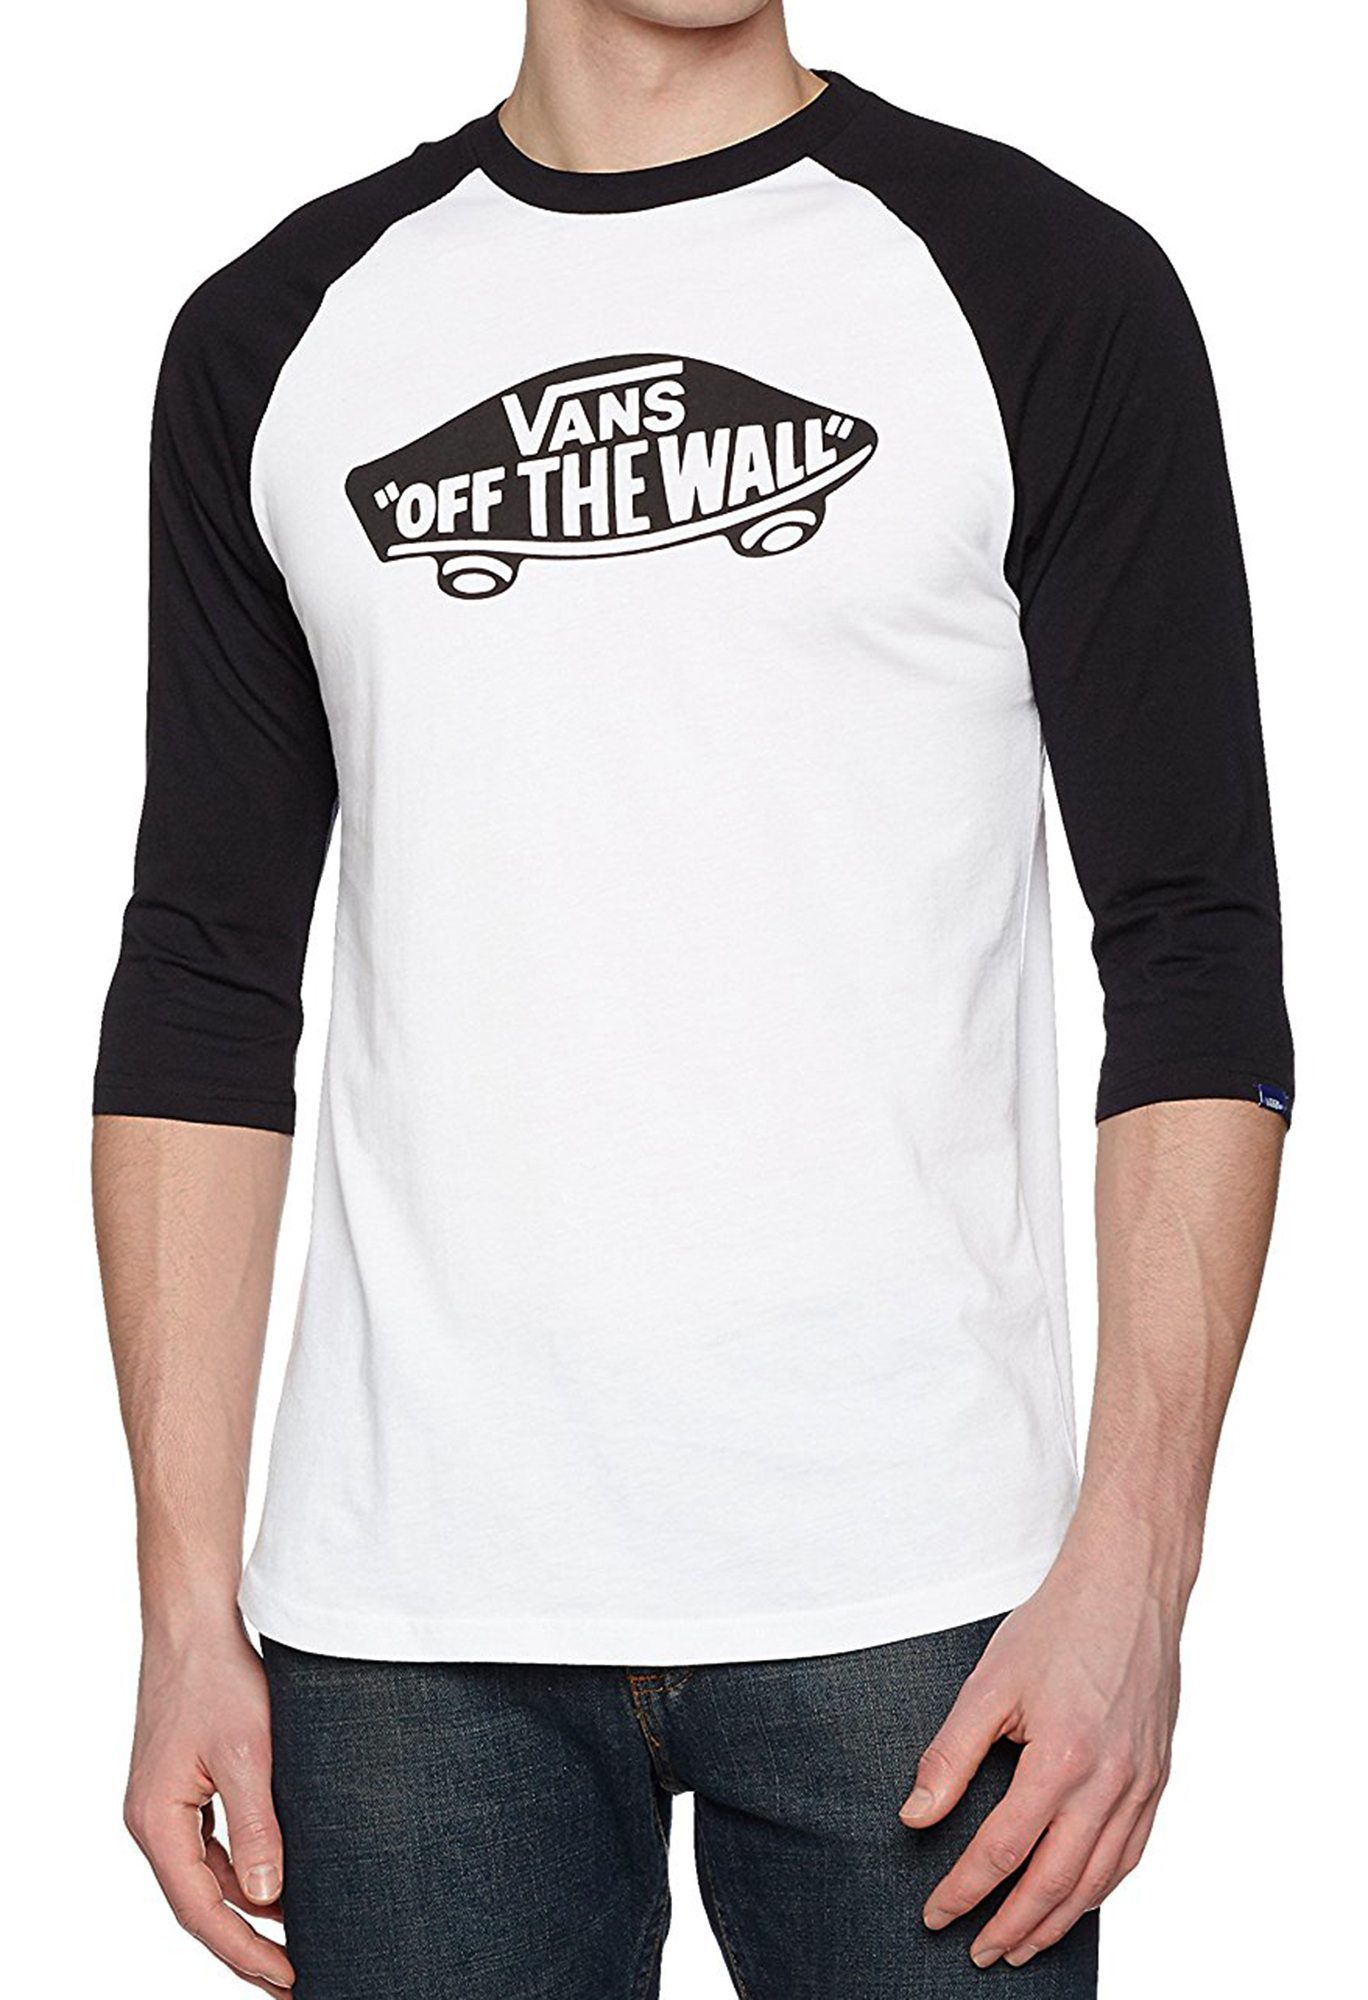 77883c26db VANS Off The Wall Logo Mens Long Sleeve Raglan T-Shirt Print Top Tee ...